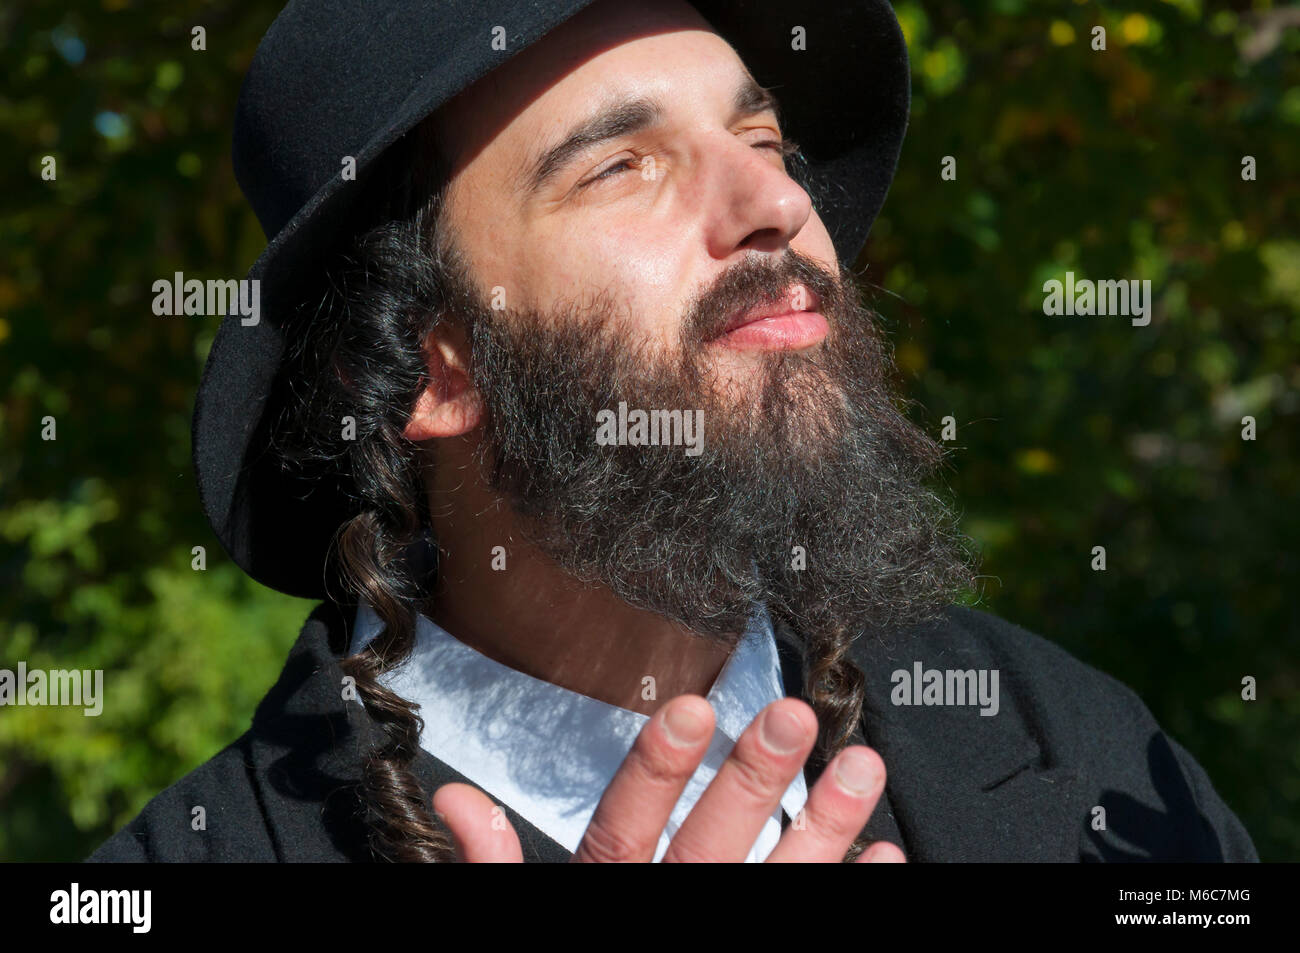 1422e3a9c75 Outdoor sunny portrait of a young happy praying traditional orthodox Jewish  man with eyeglasses and black beard